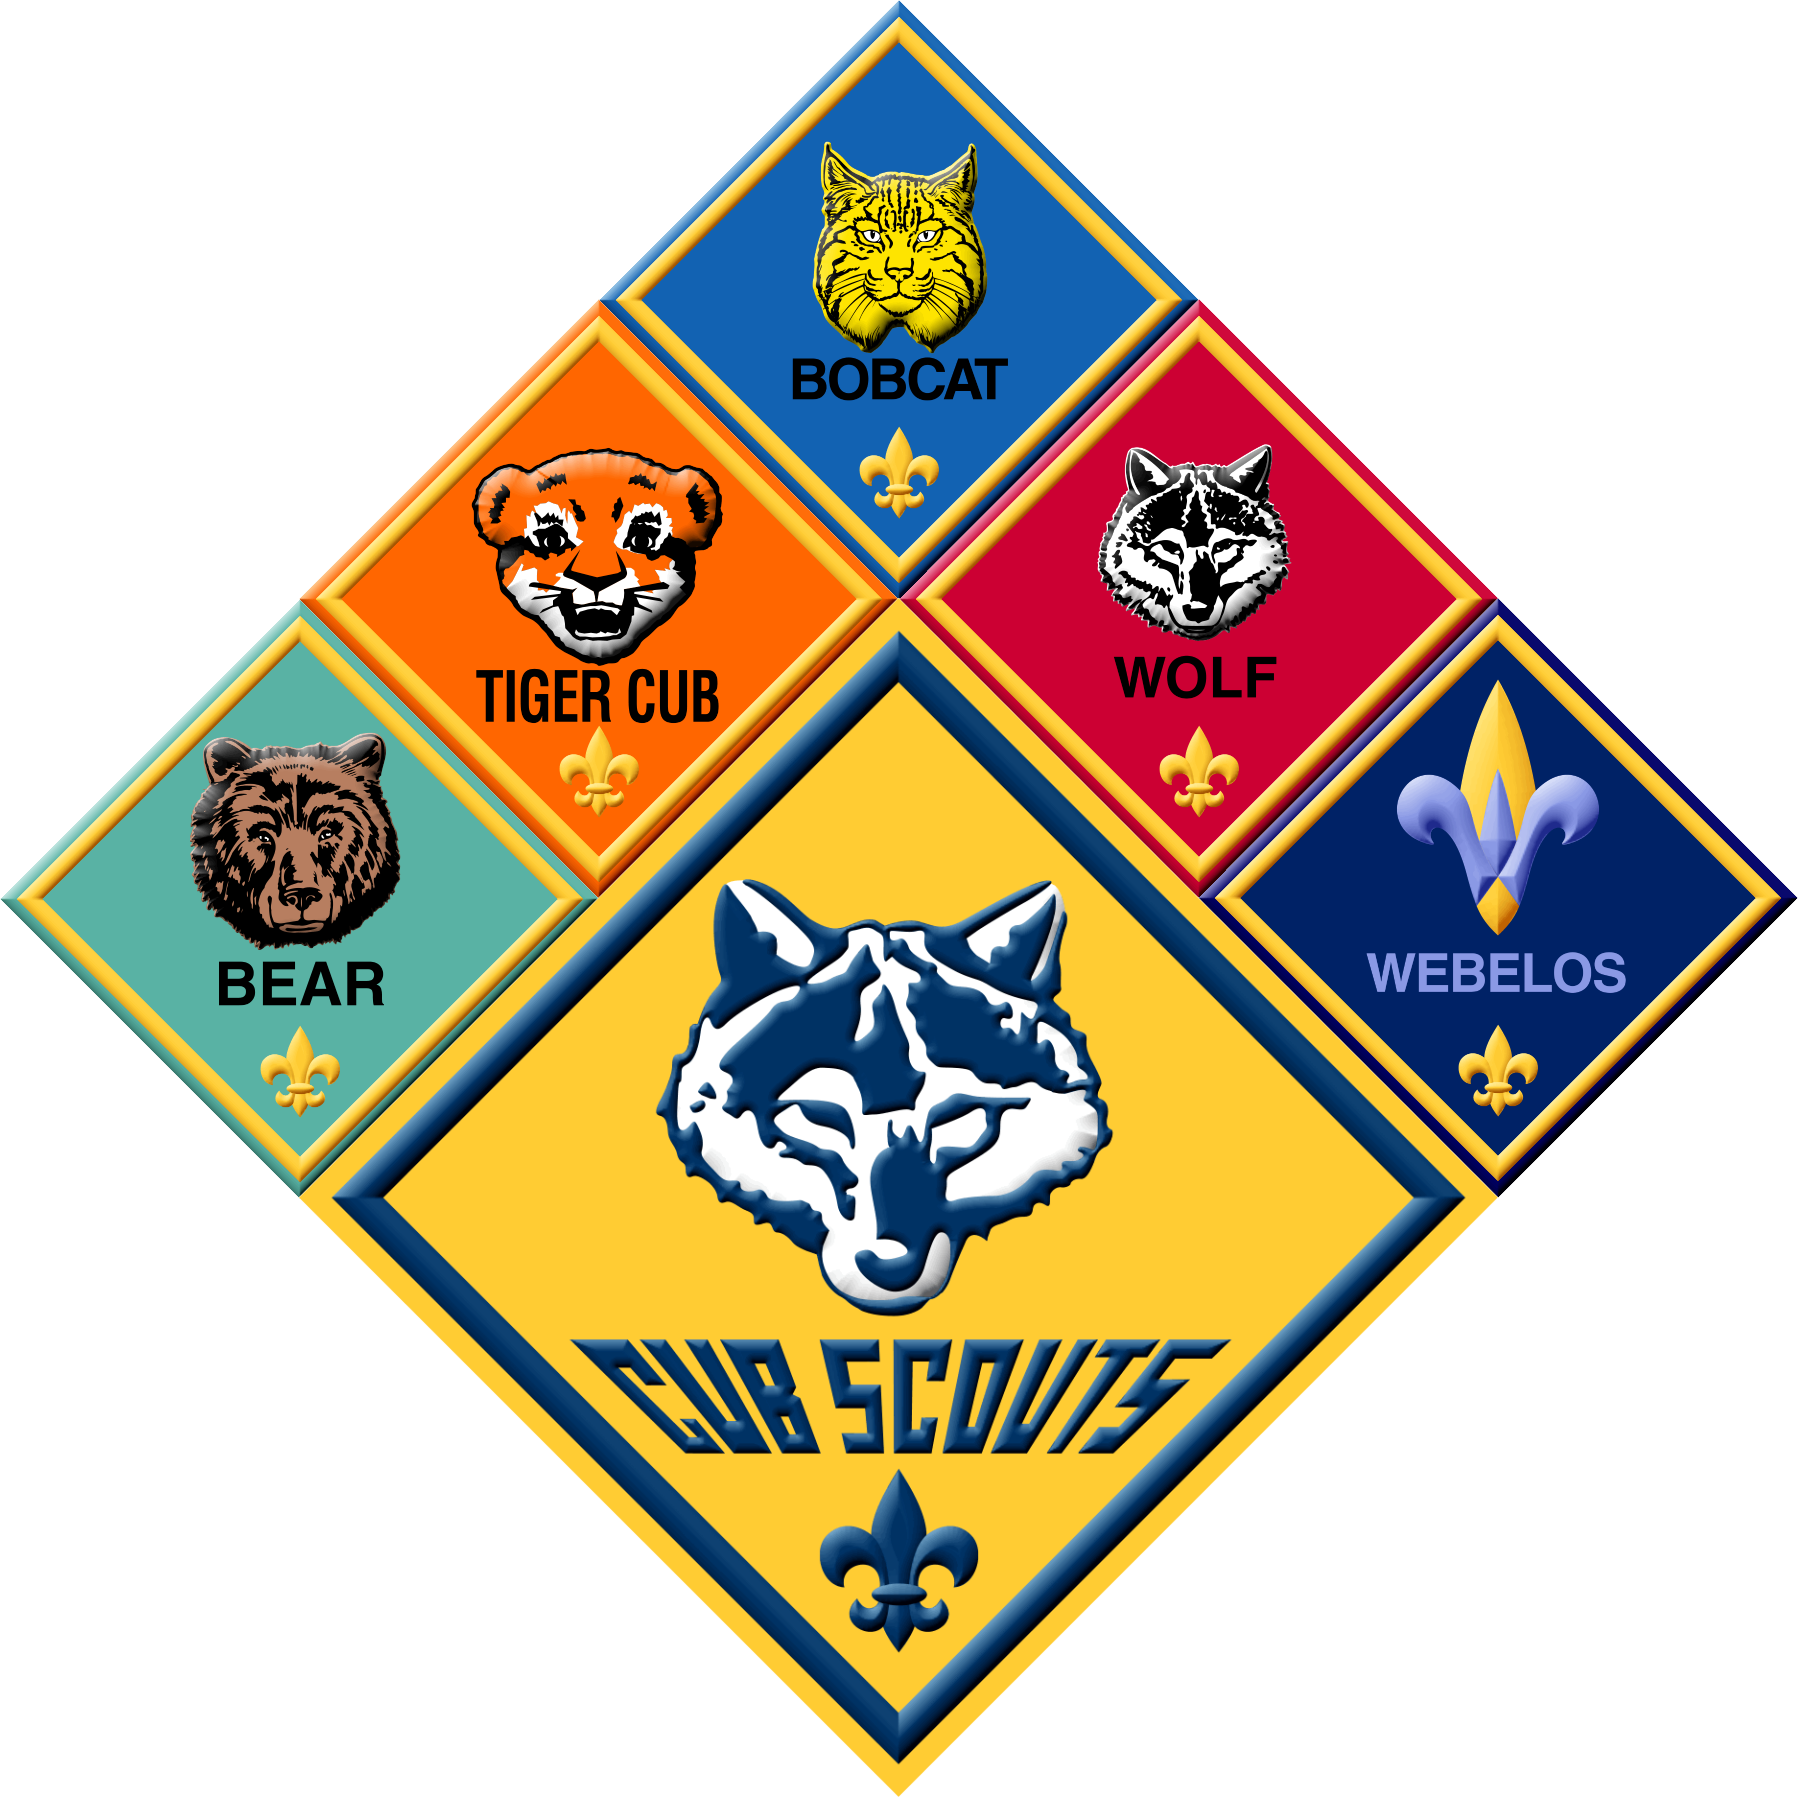 Tiger scout clipart free banner freeuse download Bobcat Clipart Cub Scout - Pencil And In C #79910 ... banner freeuse download